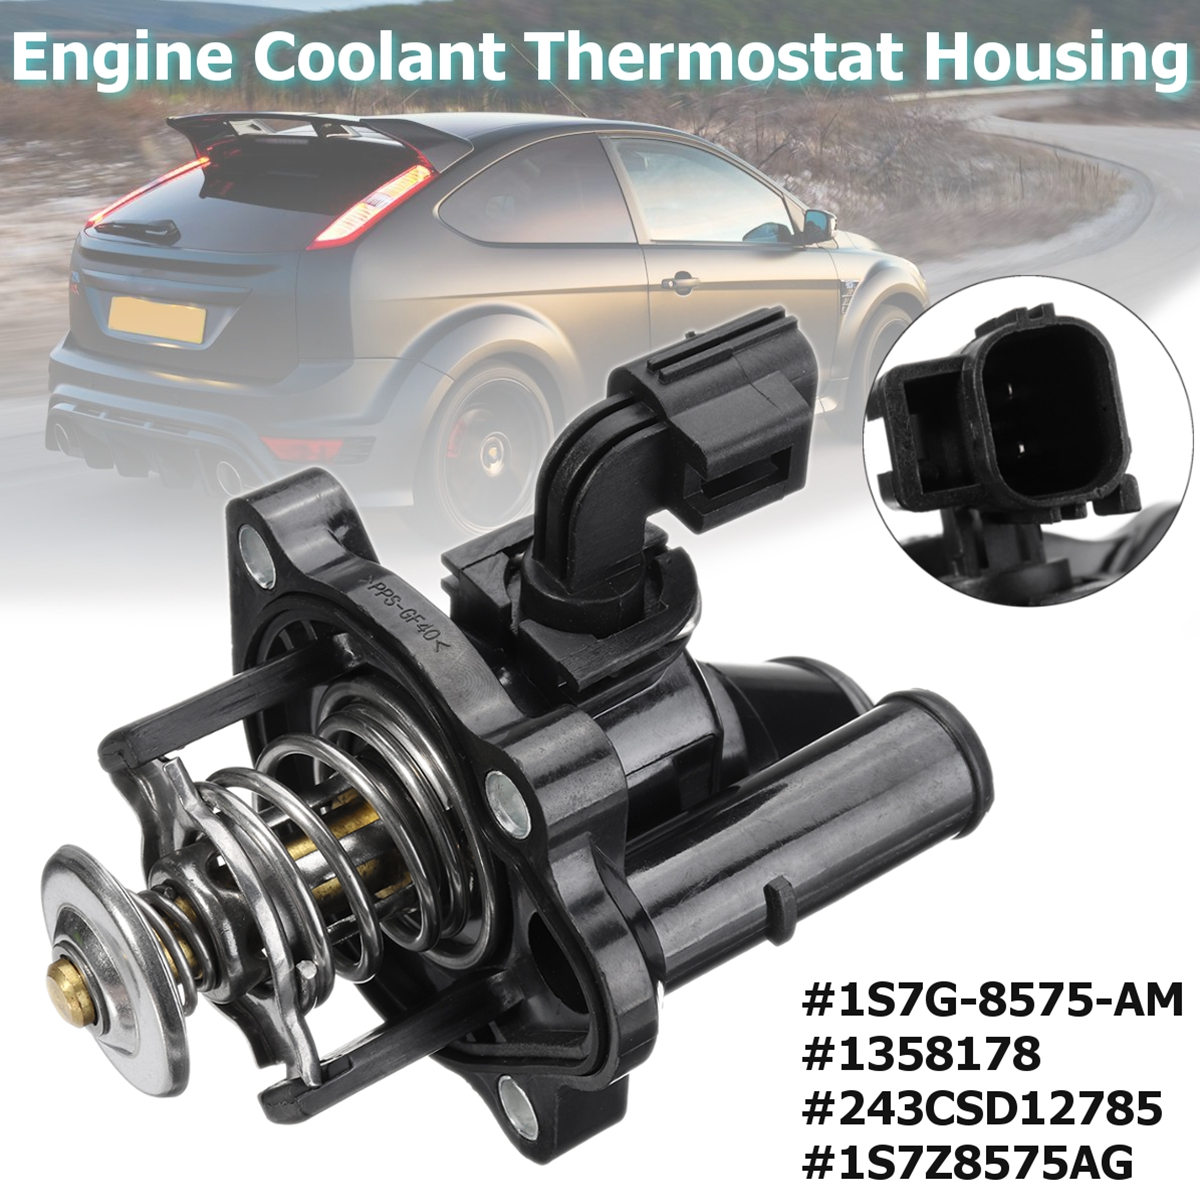 Car Engine Coolant Thermostat With Housing for Mazda/Ford/Mondeo/Focus  Ranger MK III B2300 2000 2005 #1358178-in Thermostats & Parts from  Automobiles ...